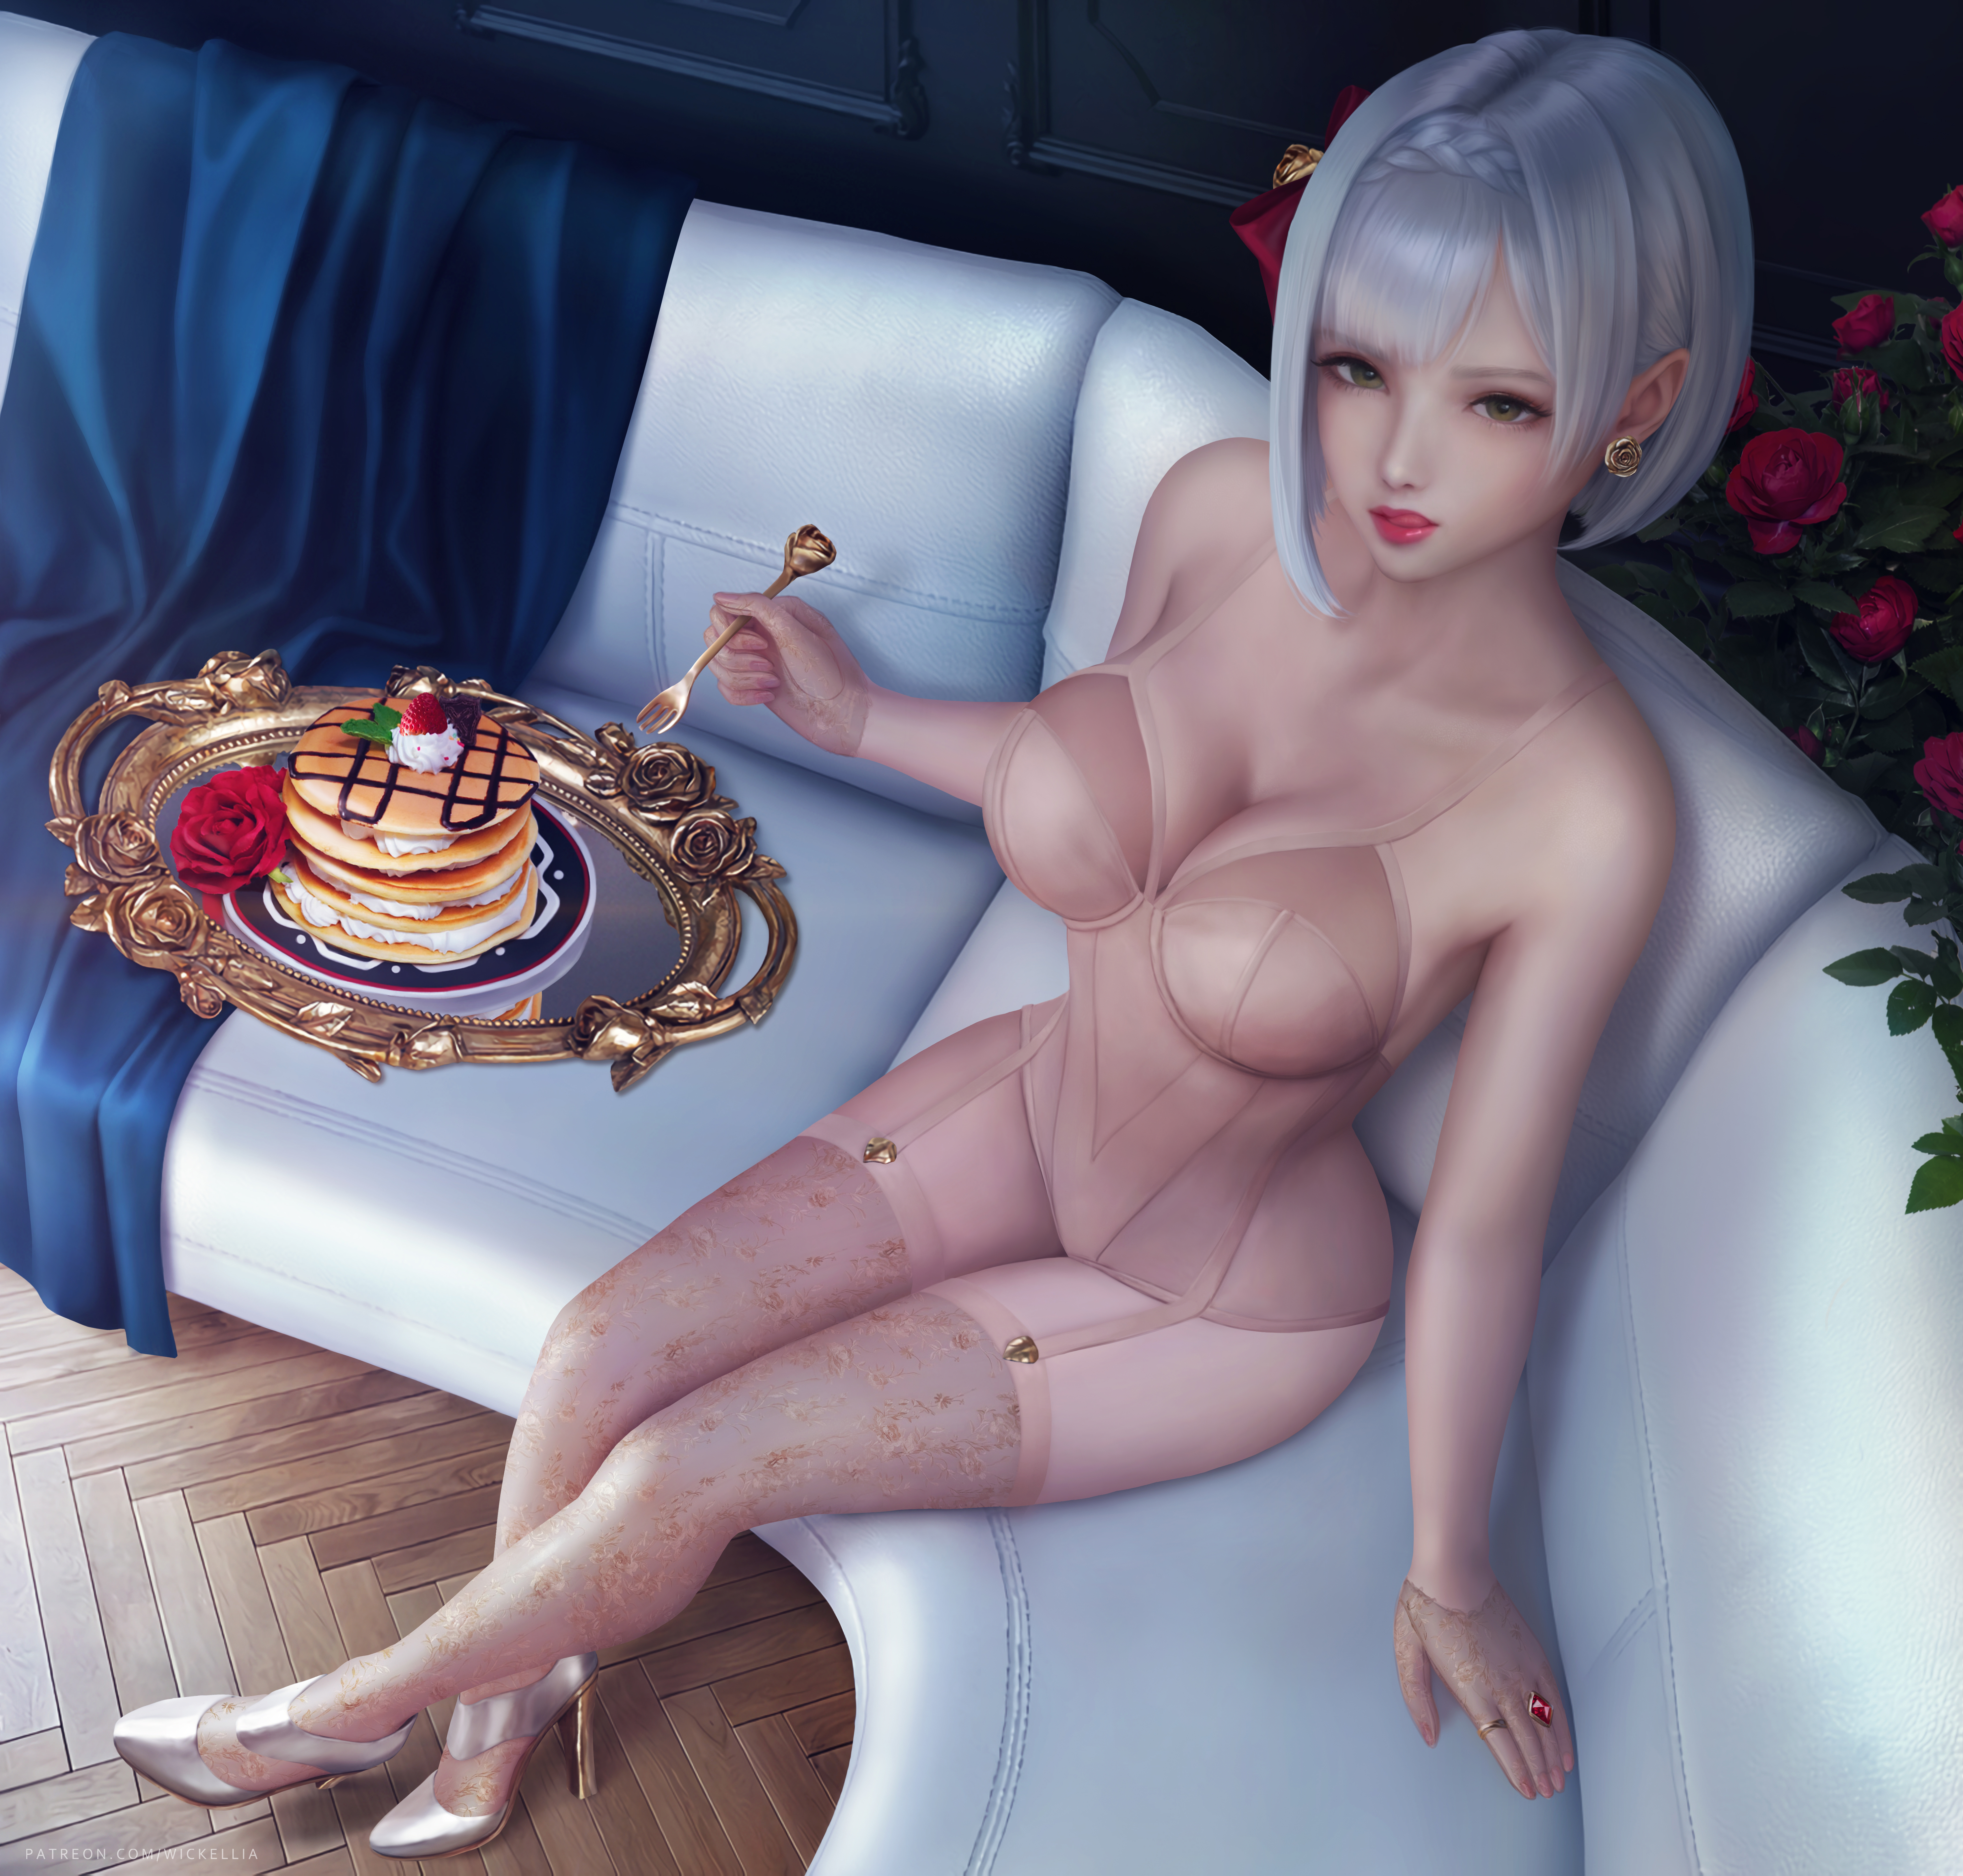 Anime 6800x6500 illustration artwork digital art fan art drawing fantasy art fantasy girl Wickellia video games video game girls video game art video game characters anime anime girls Genshin Impact lingerie cleavage belly belly button food short hair silver hair looking at viewer Noelle (Genshin Impact)